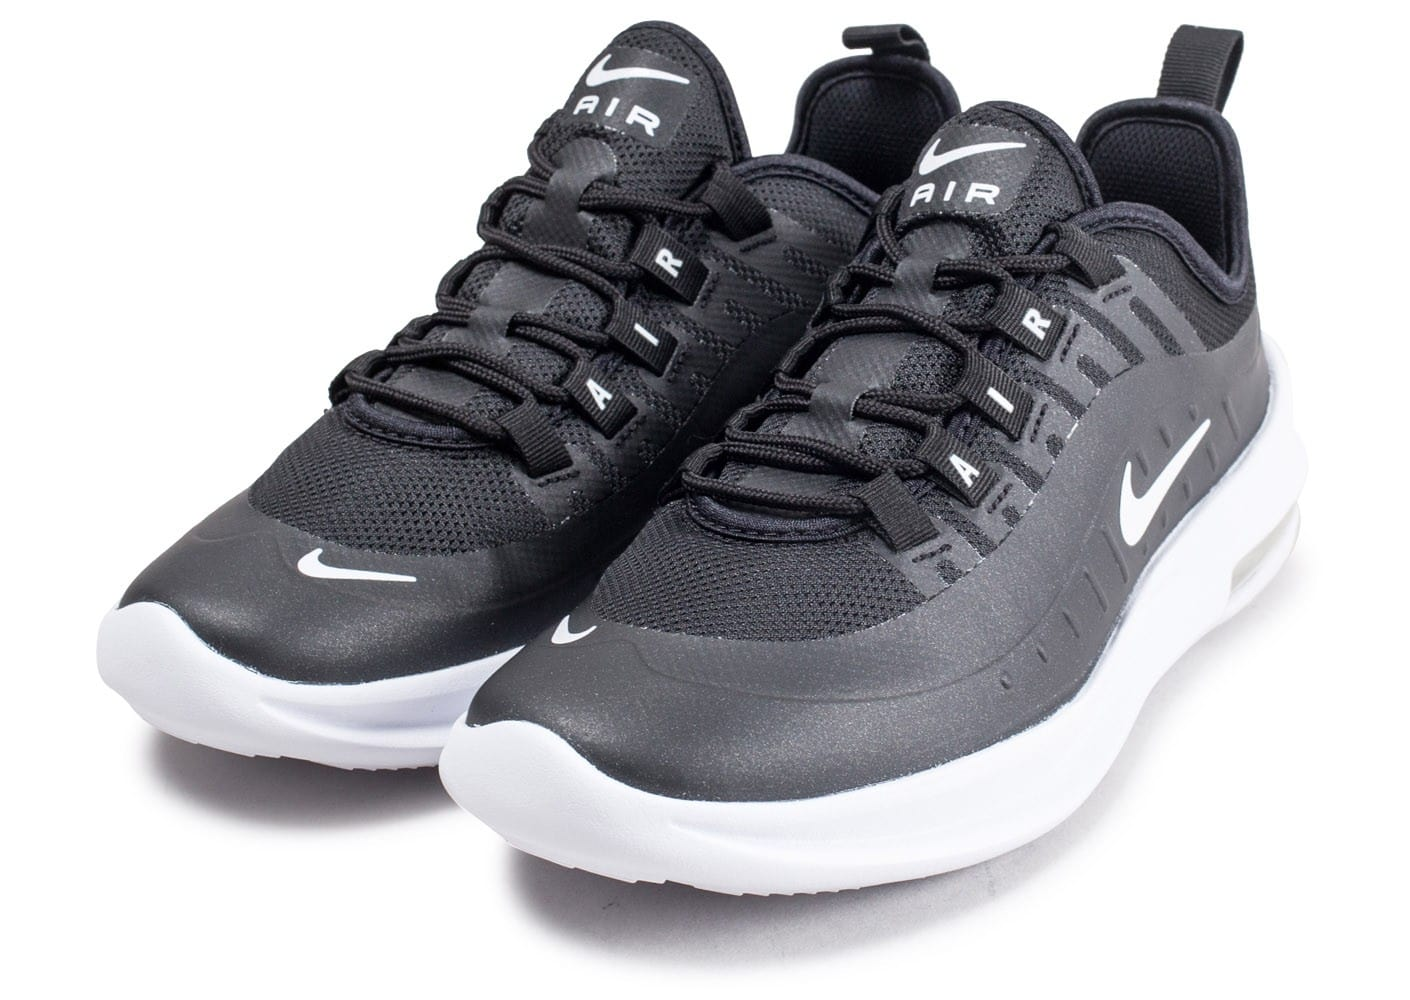 new styles 01376 e74fe ... Chaussures Nike Air Max Axis junior noire et blanche vue intérieure ...